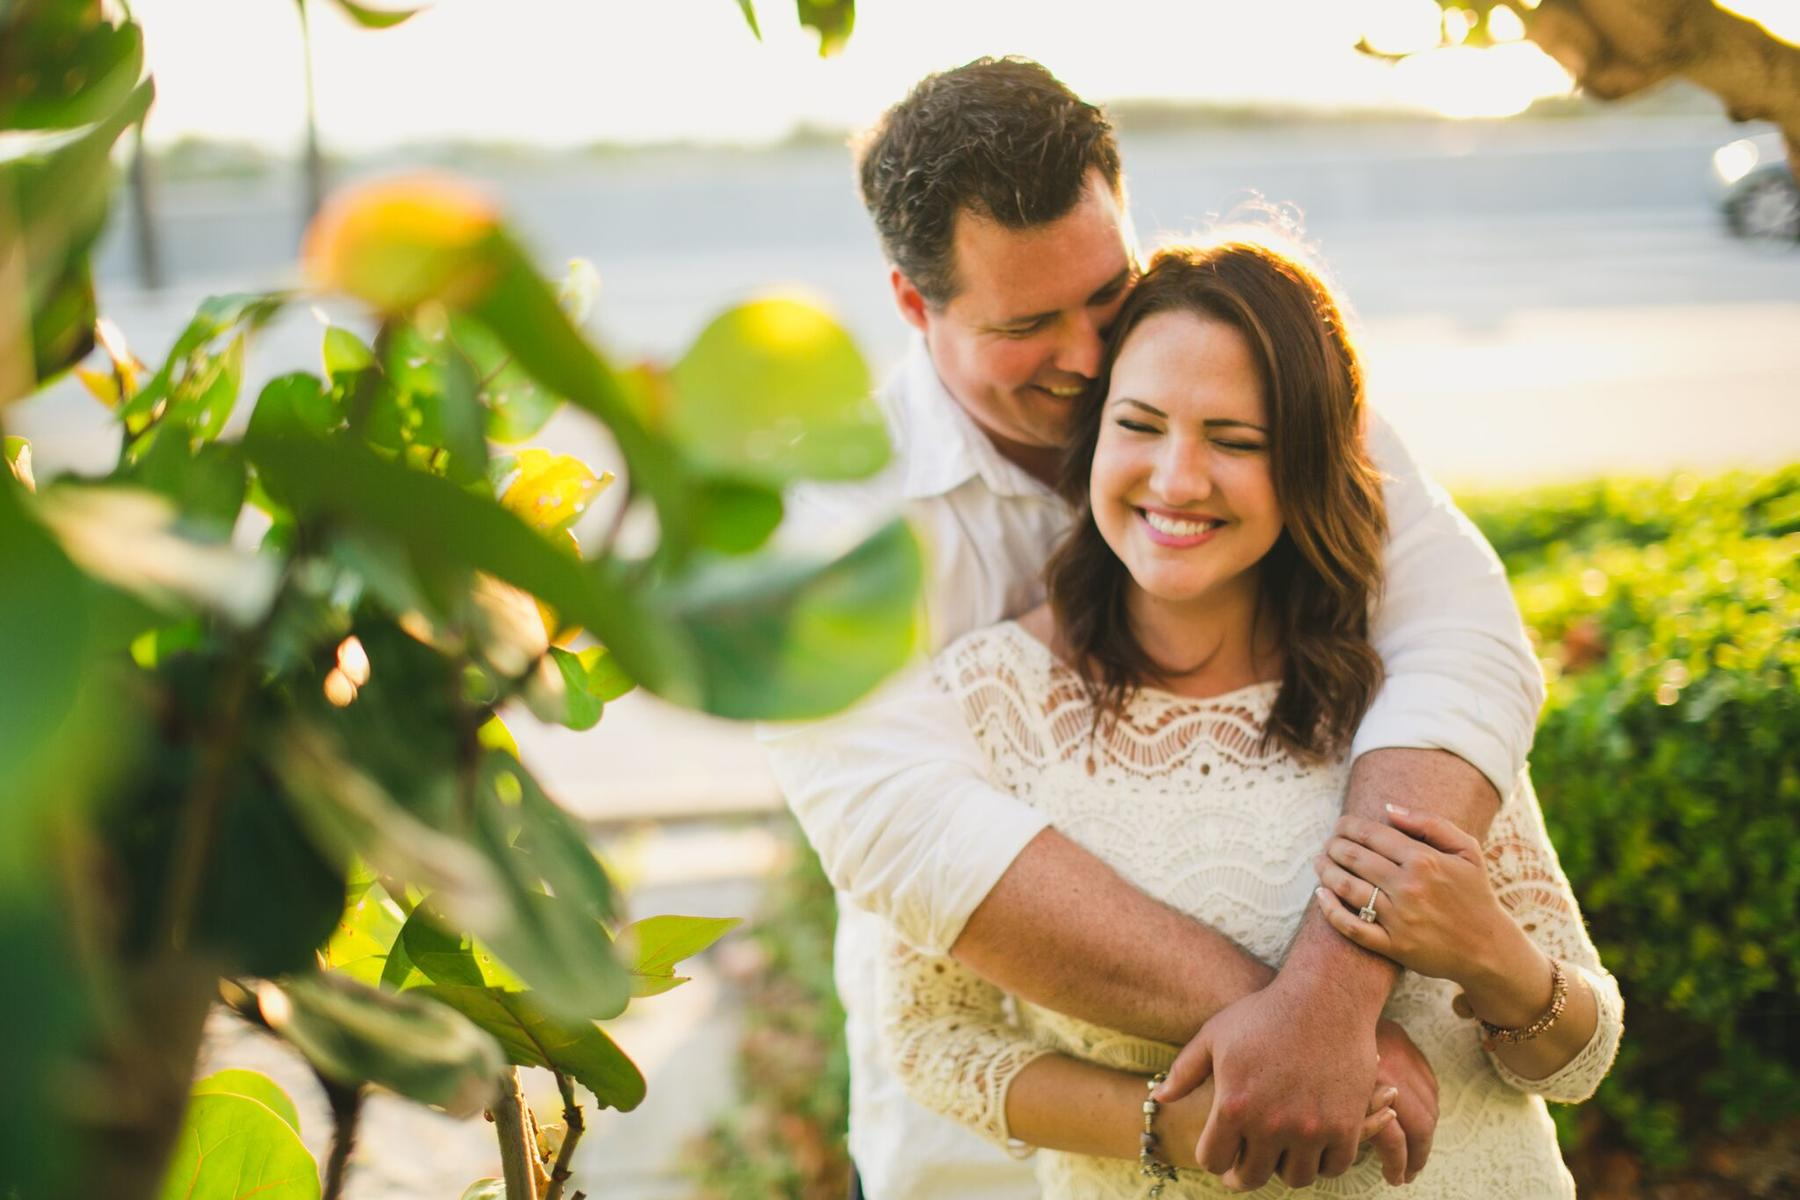 Amy and Justin Pounders' Engagement Photo